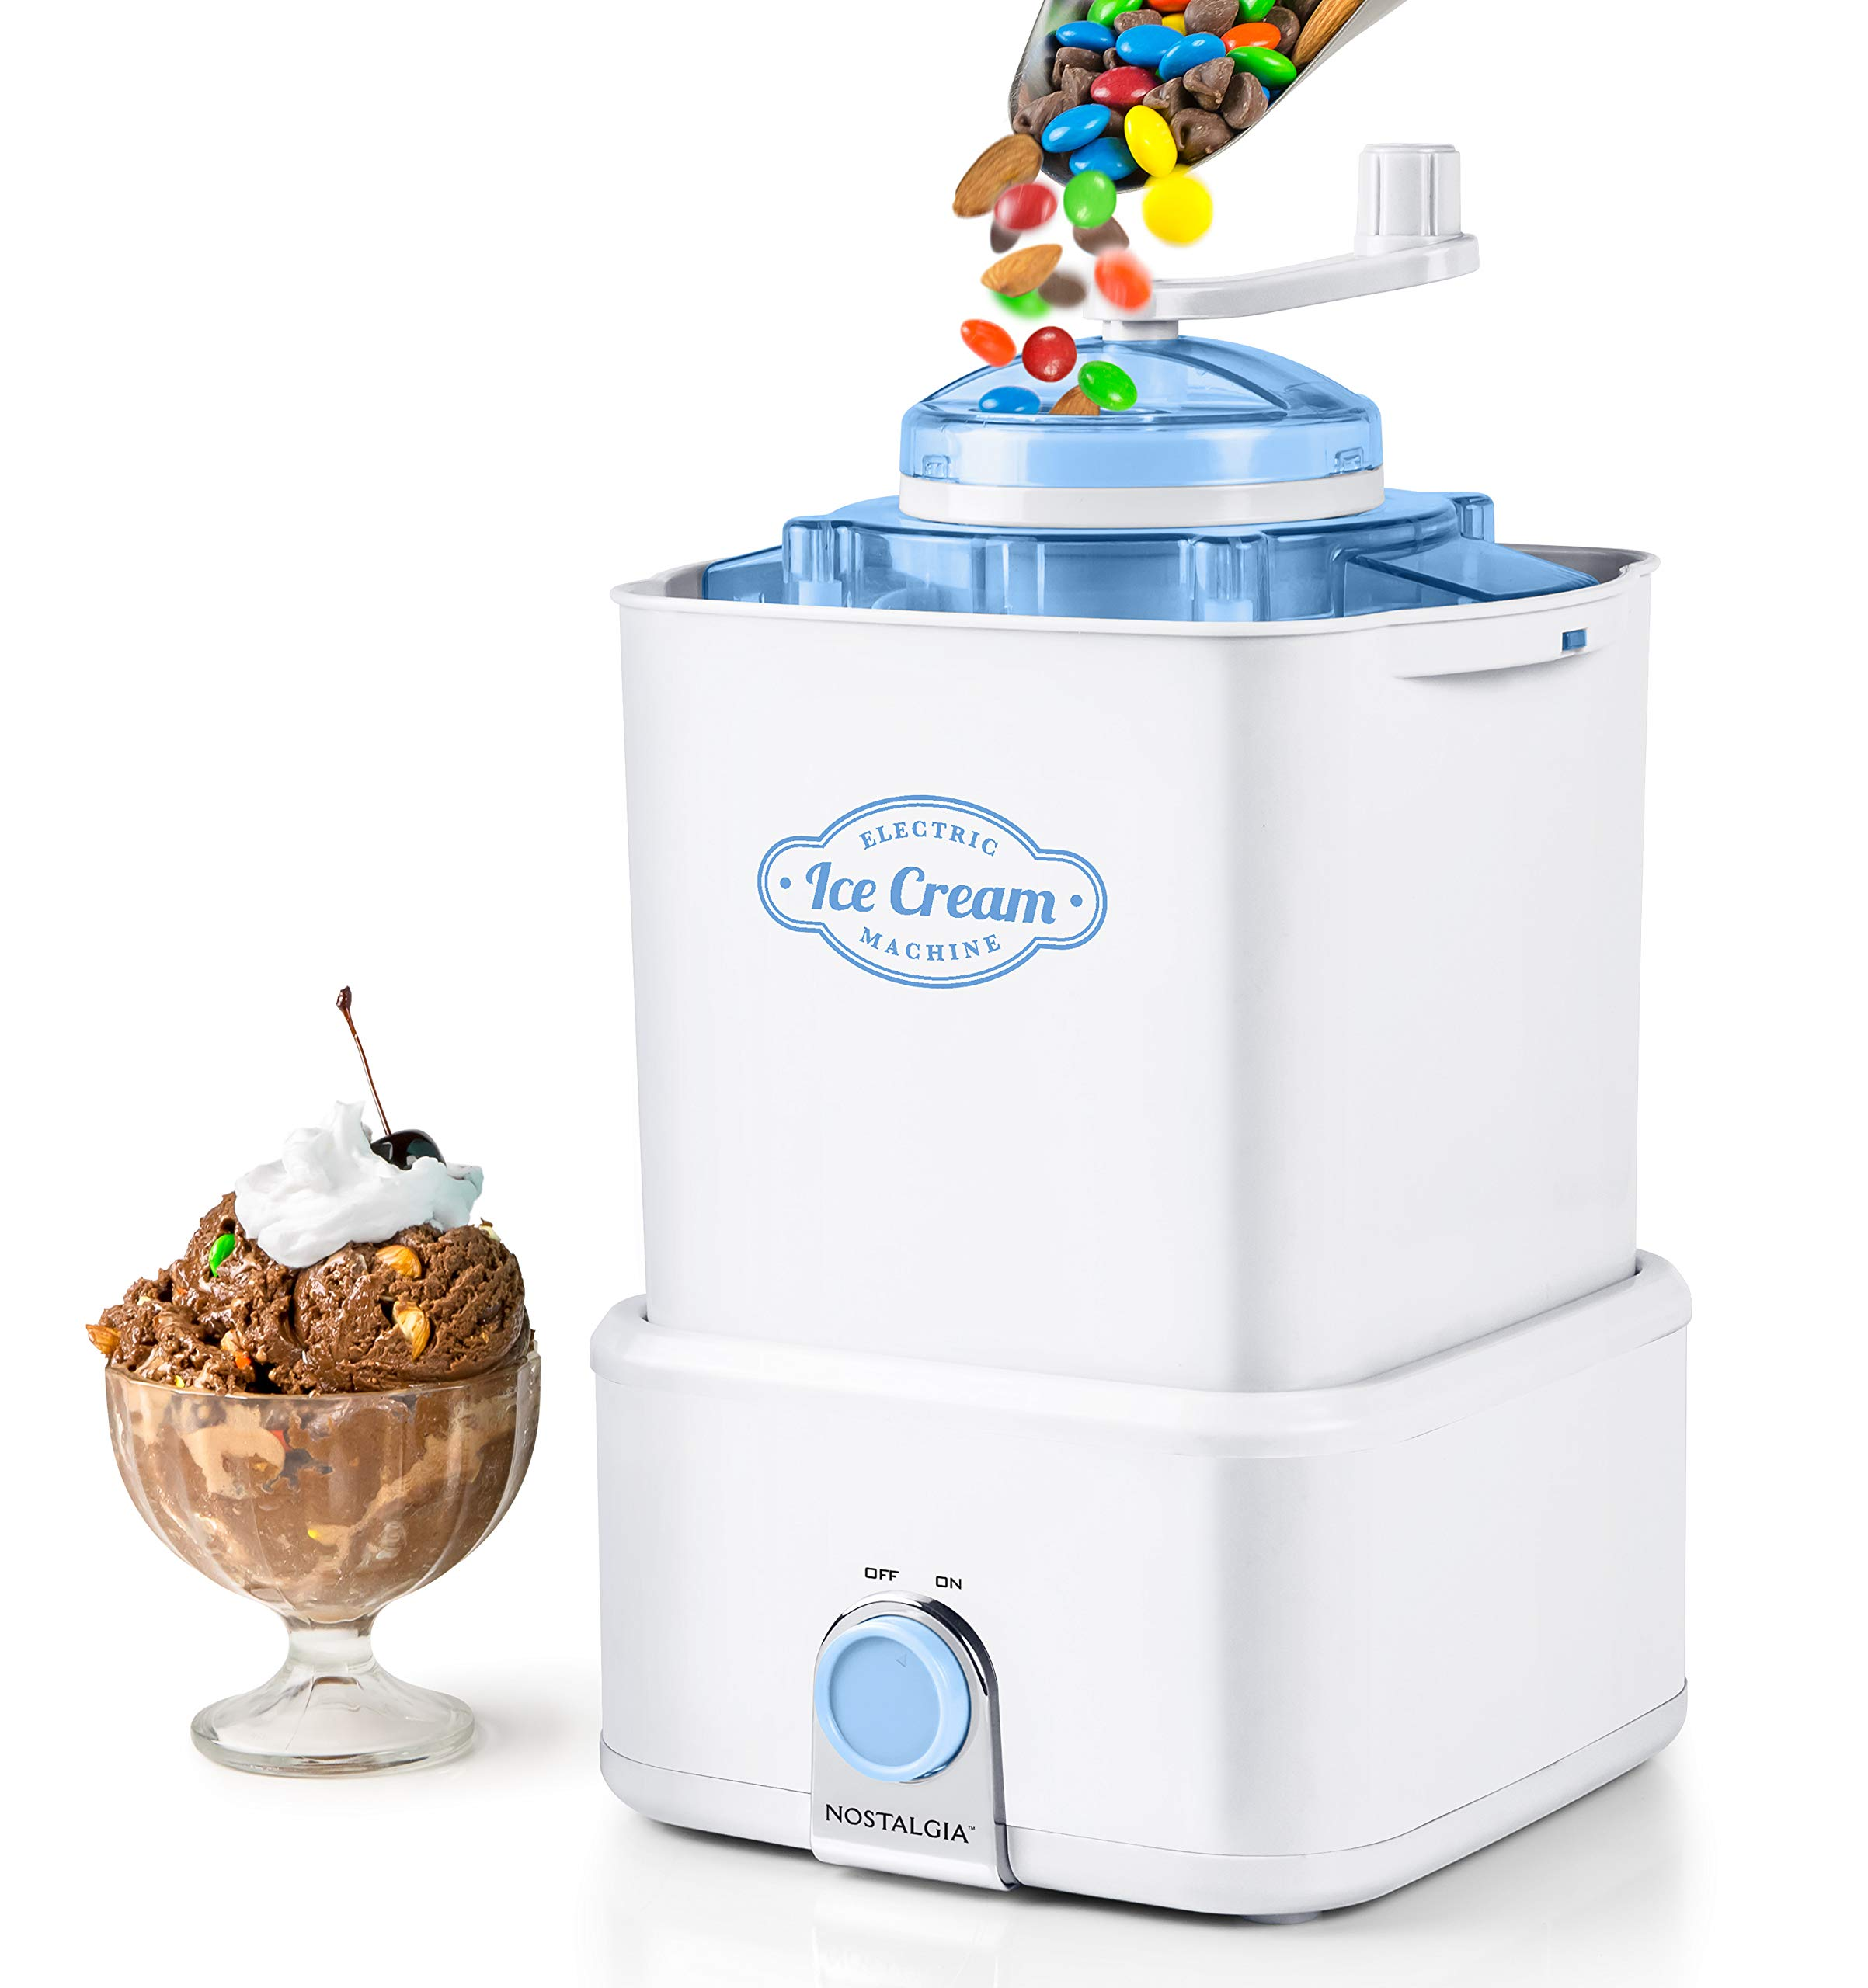 Nostalgia CICM2WB Electric Ice Cream Maker with with Candy Crusher, 2-Quart, White/Blue